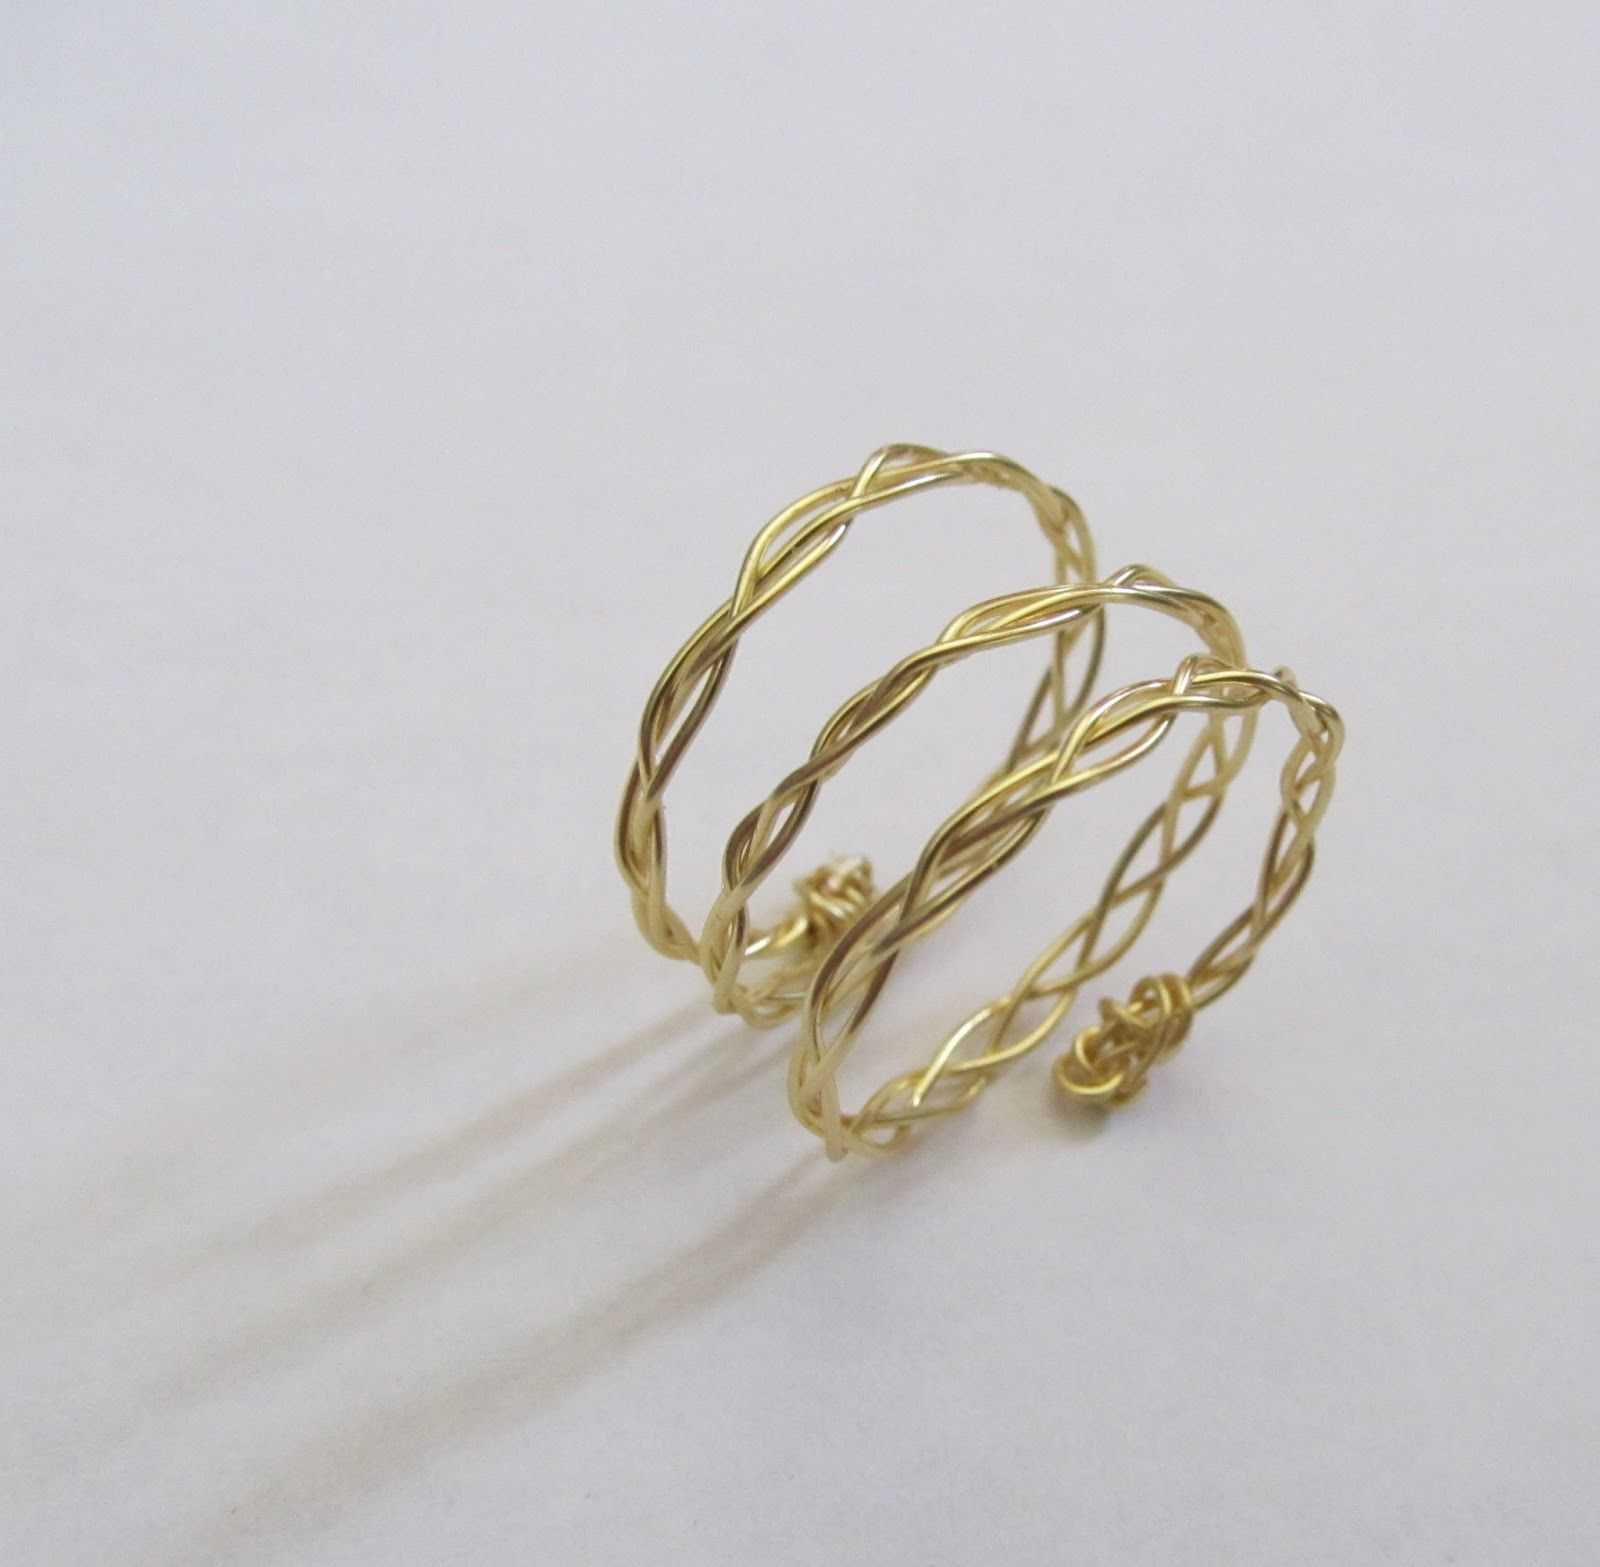 Braided Wire Rings, DIY | Tutorials and Craft